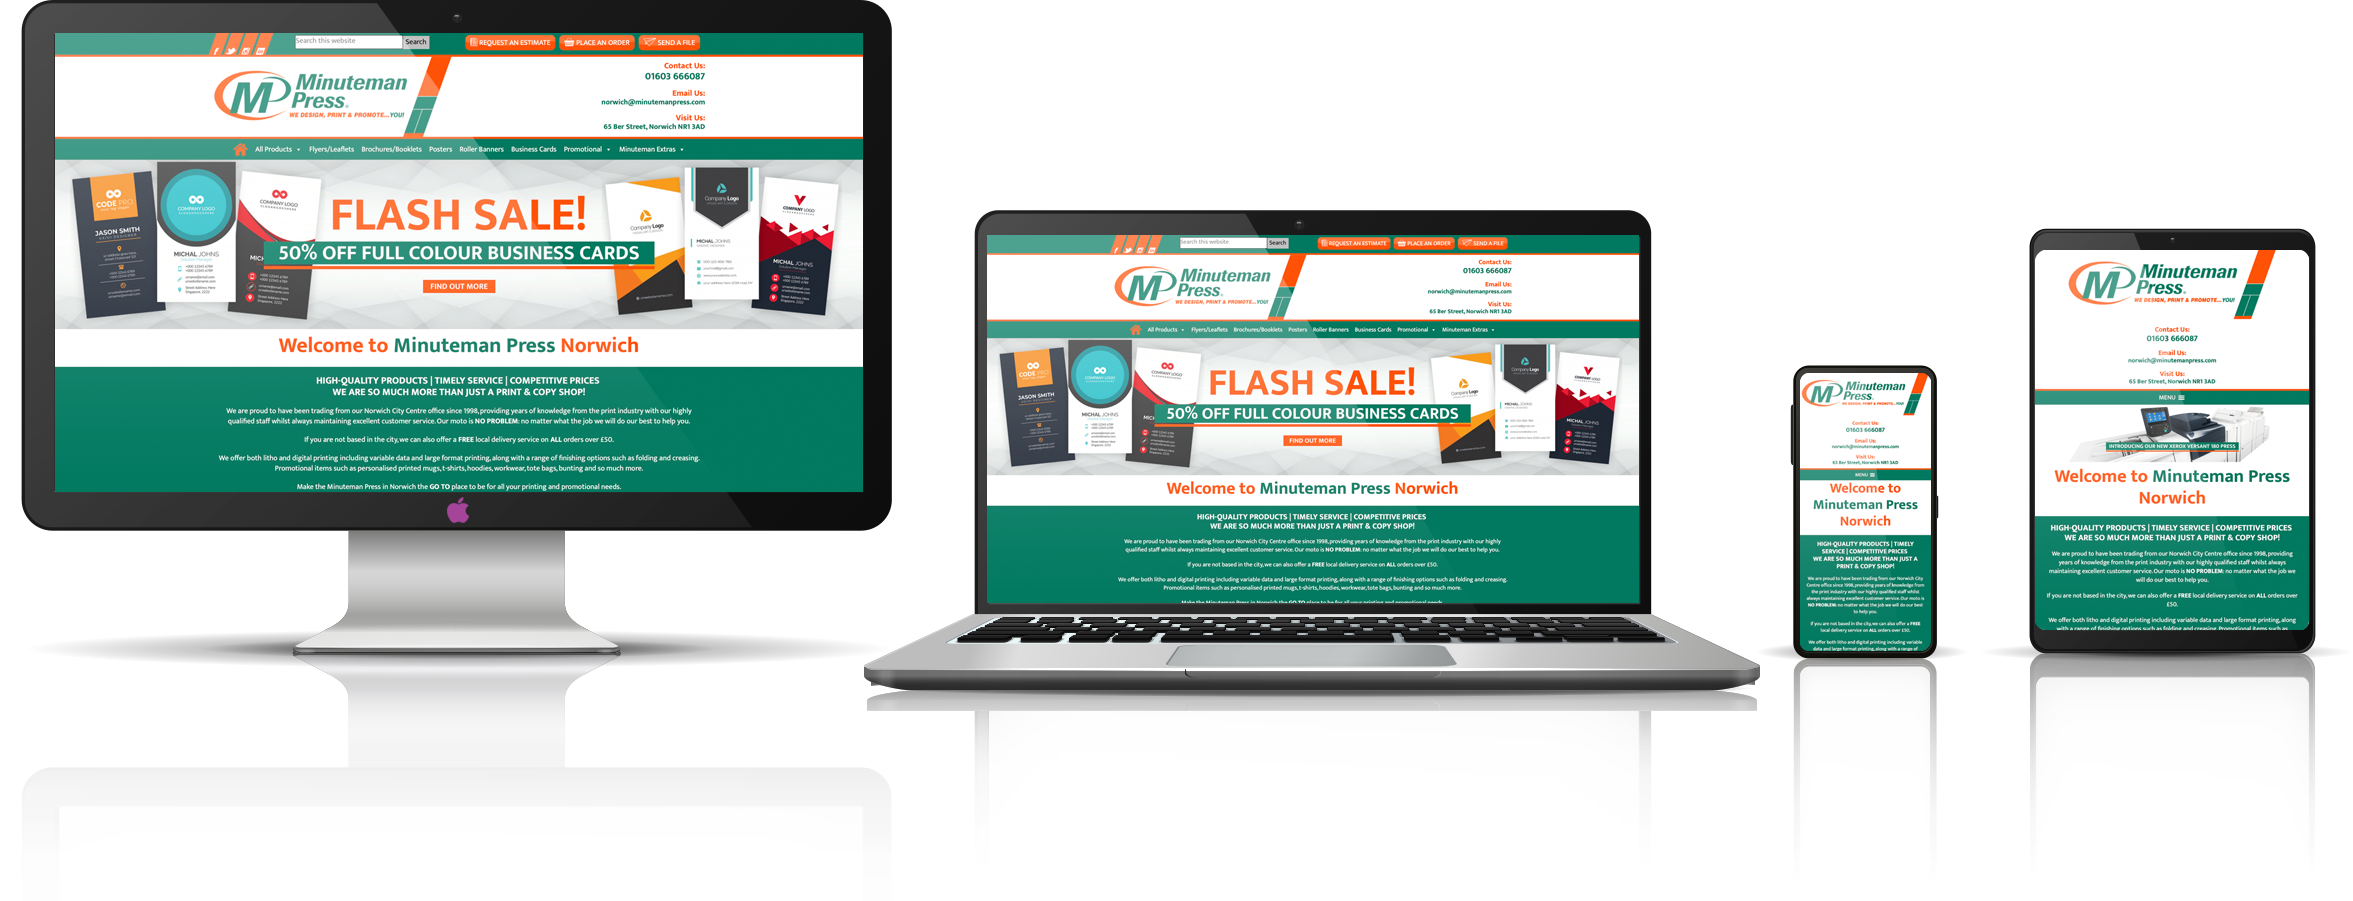 The Minuteman Press Norwich fully responsive mock-up image showing desktop, laptop, tablet, and mobile phone devices.